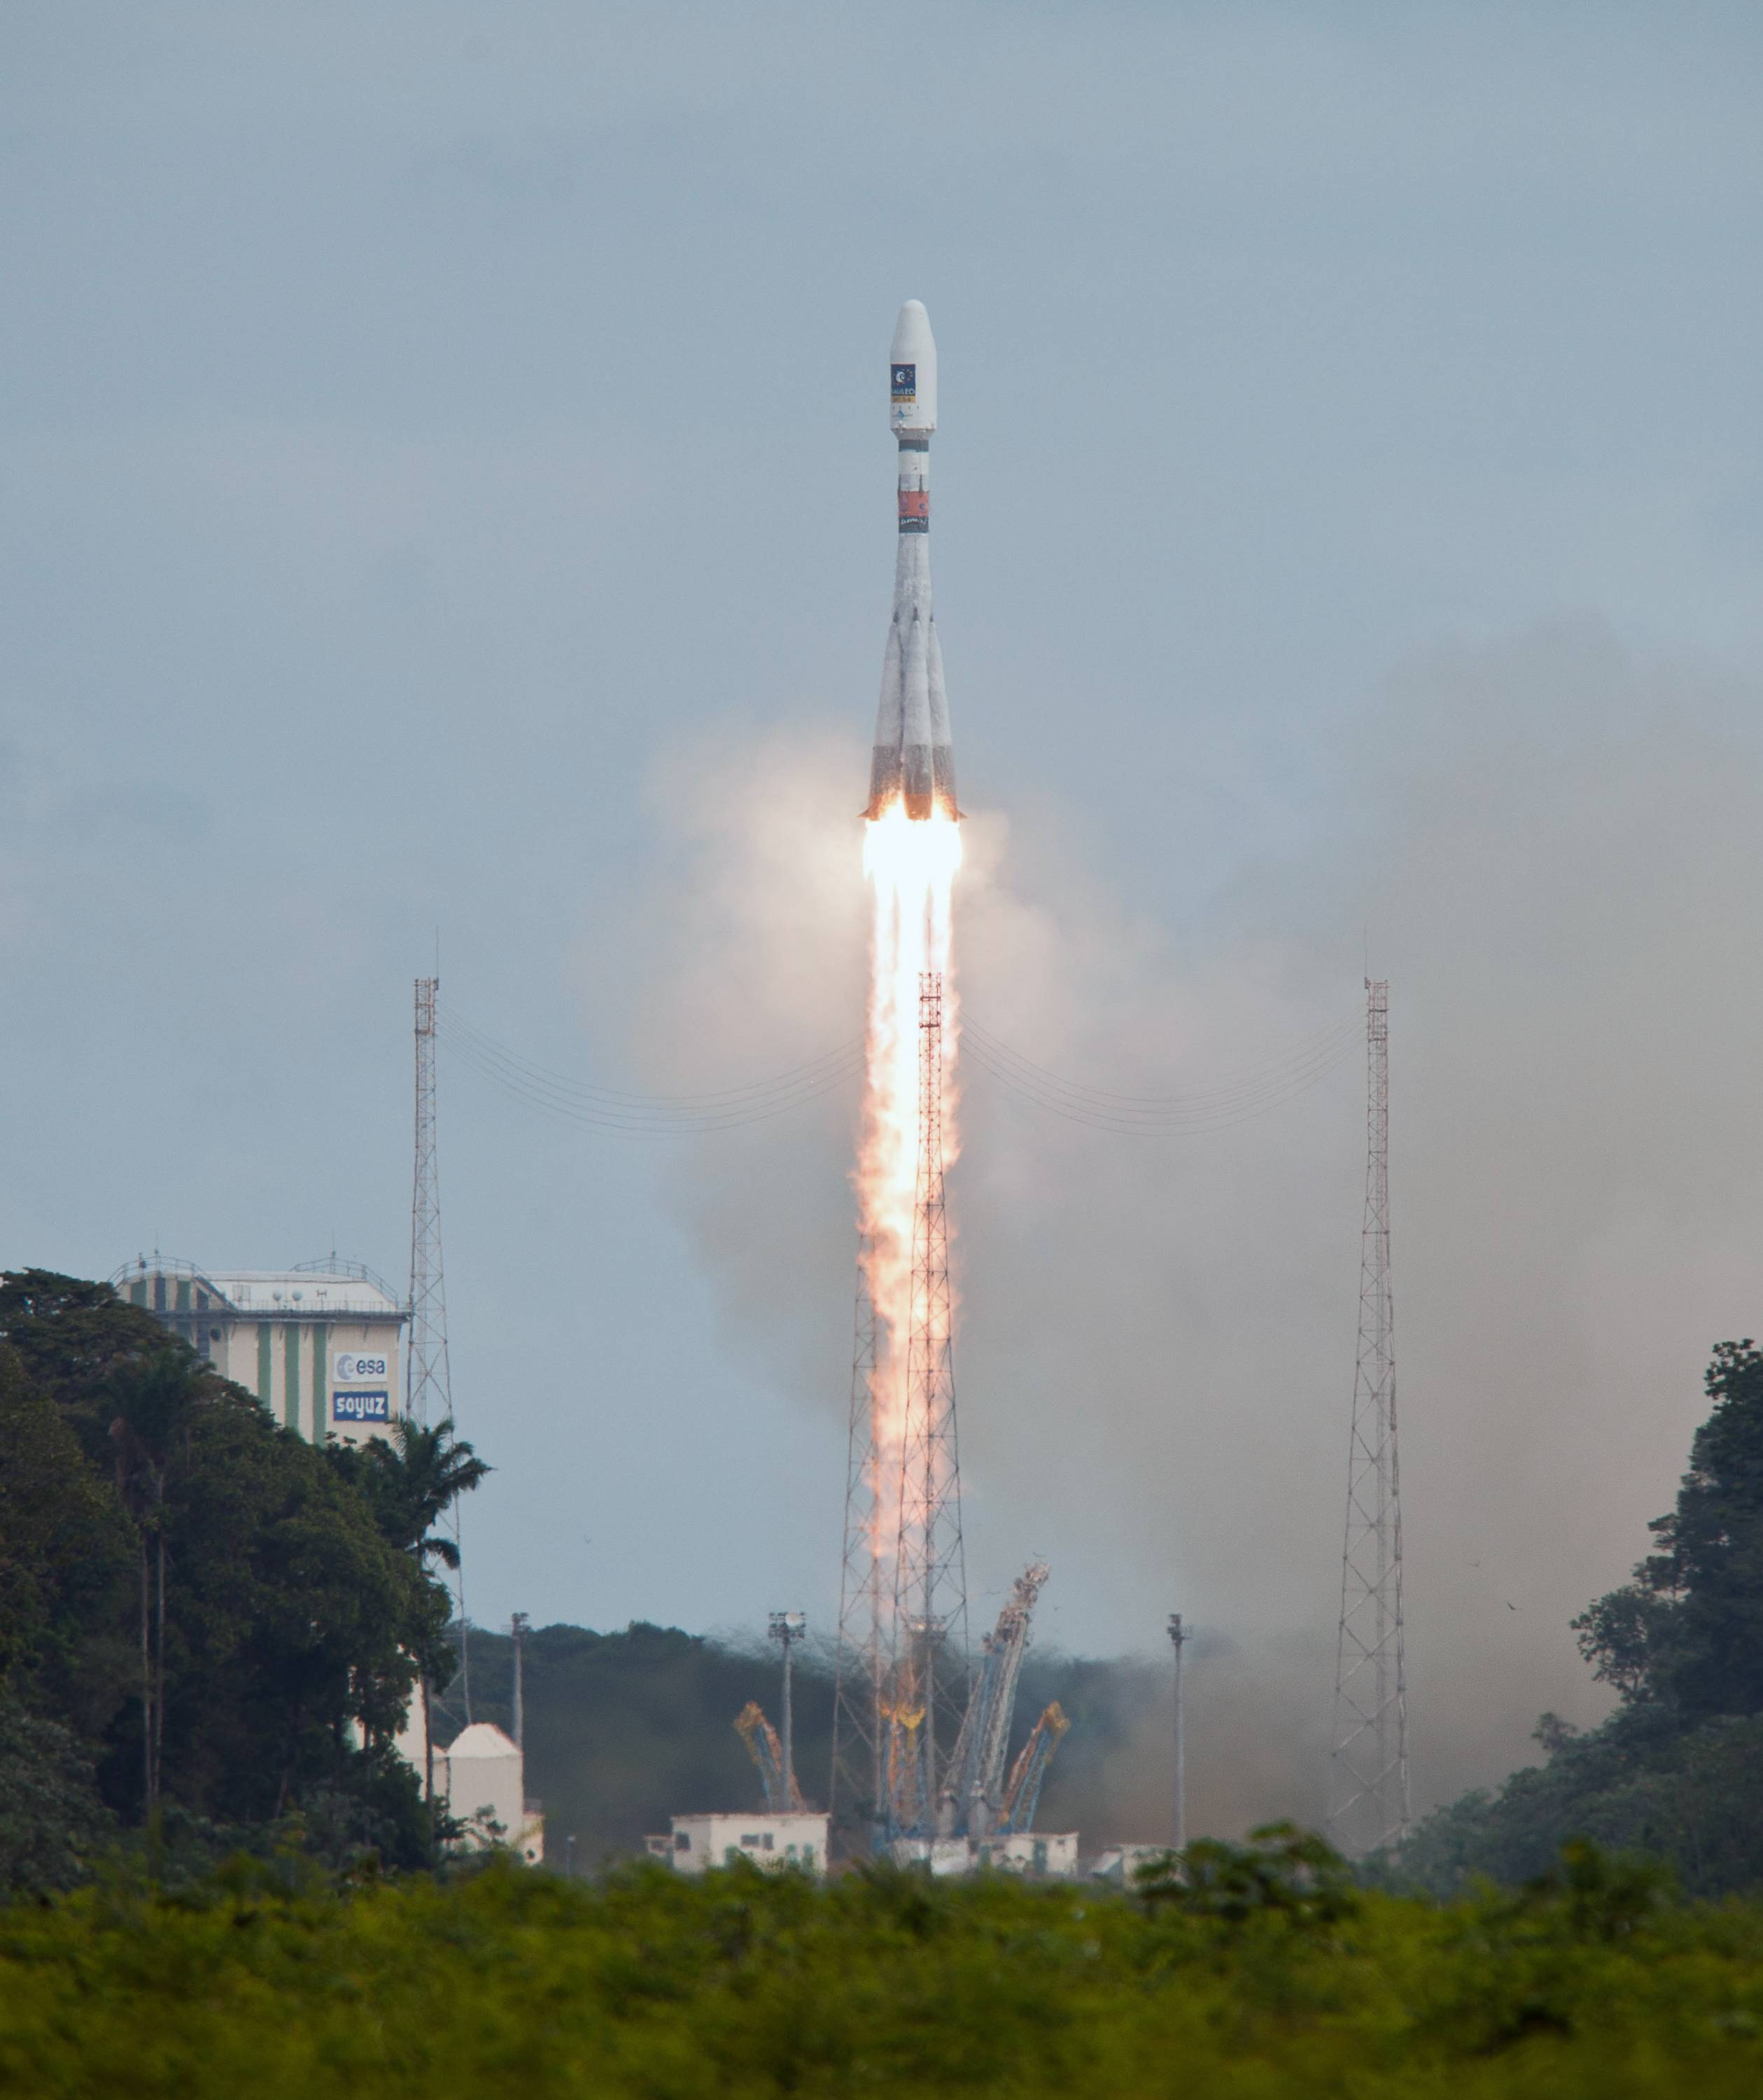 Medium-lift VS07 Soyuz rocket lifts off Friday from its launching pad in Kourou, French Guiana.